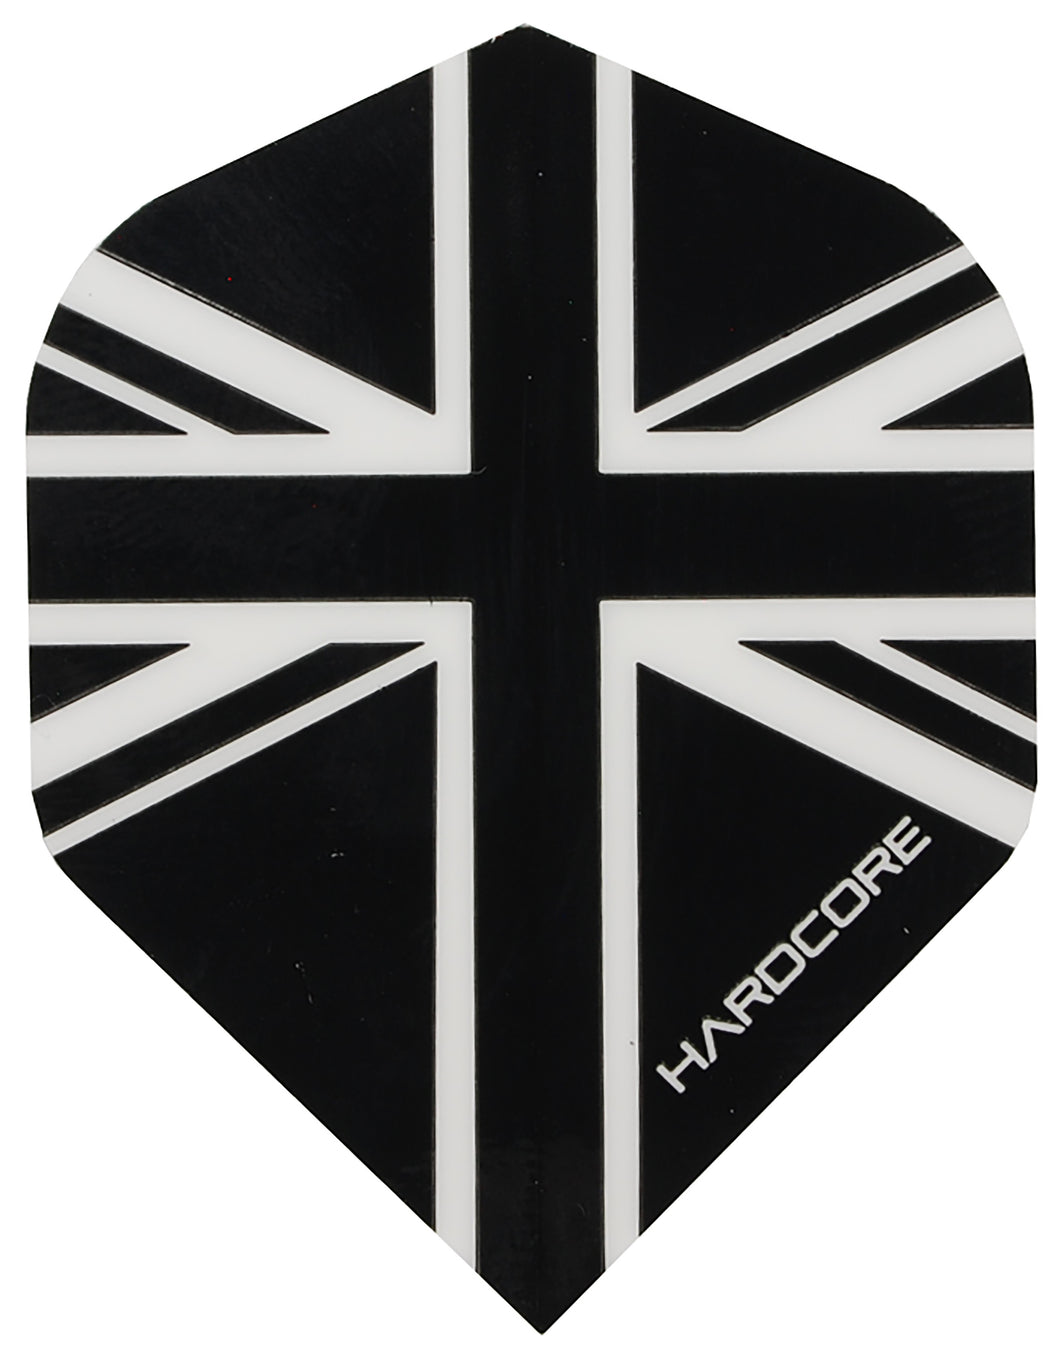 Hardcore Black Union Jack Flights